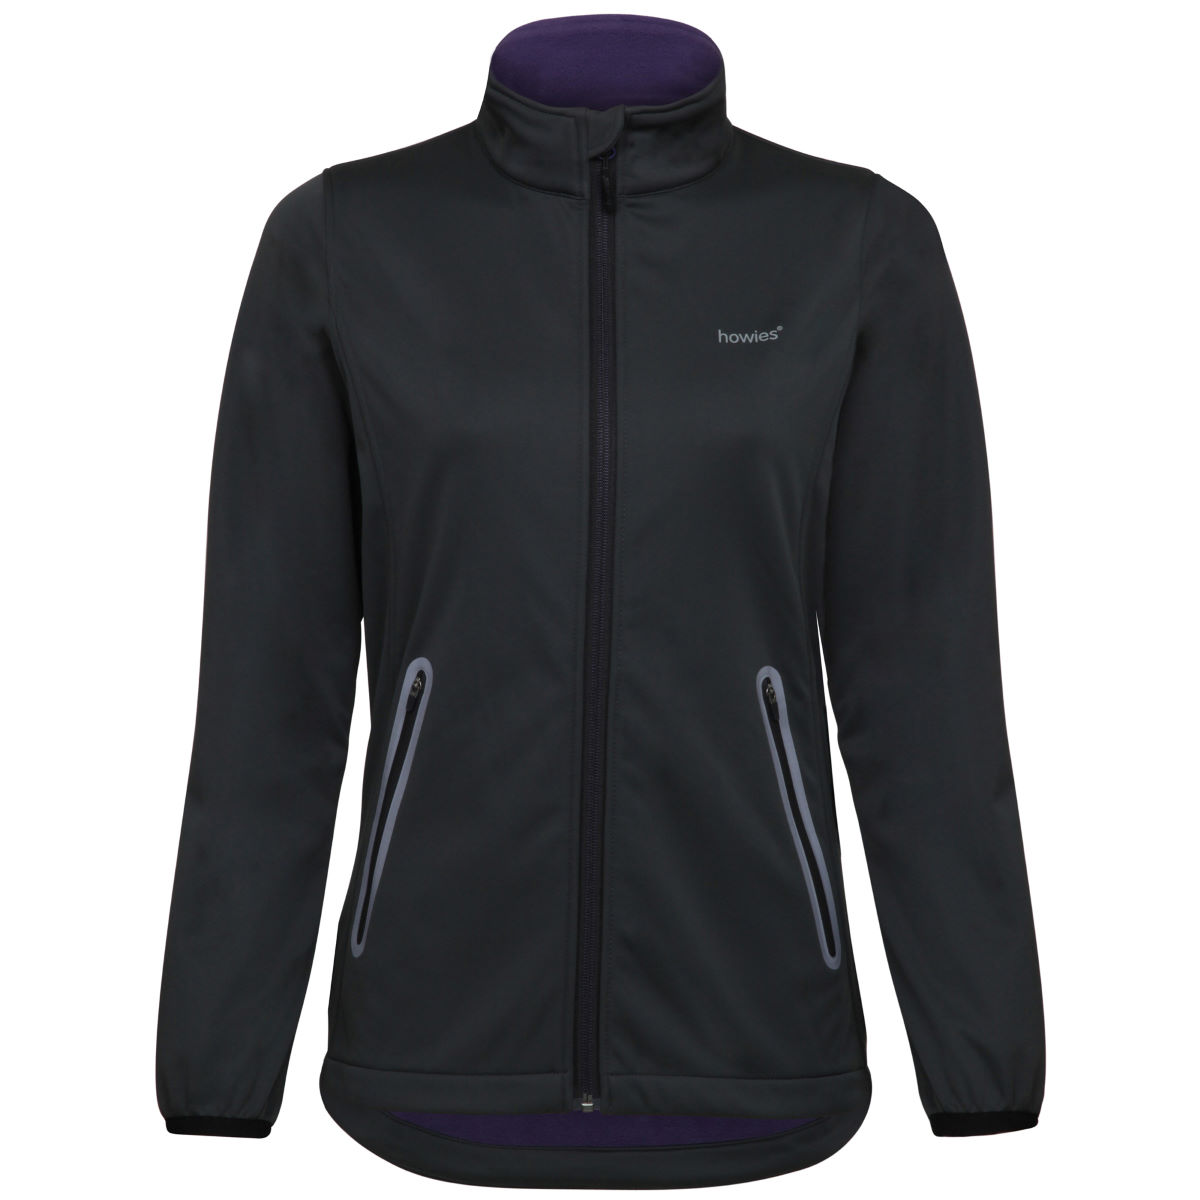 Veste Femme howies Softshell - XS Pirate Black Vestes Softshell